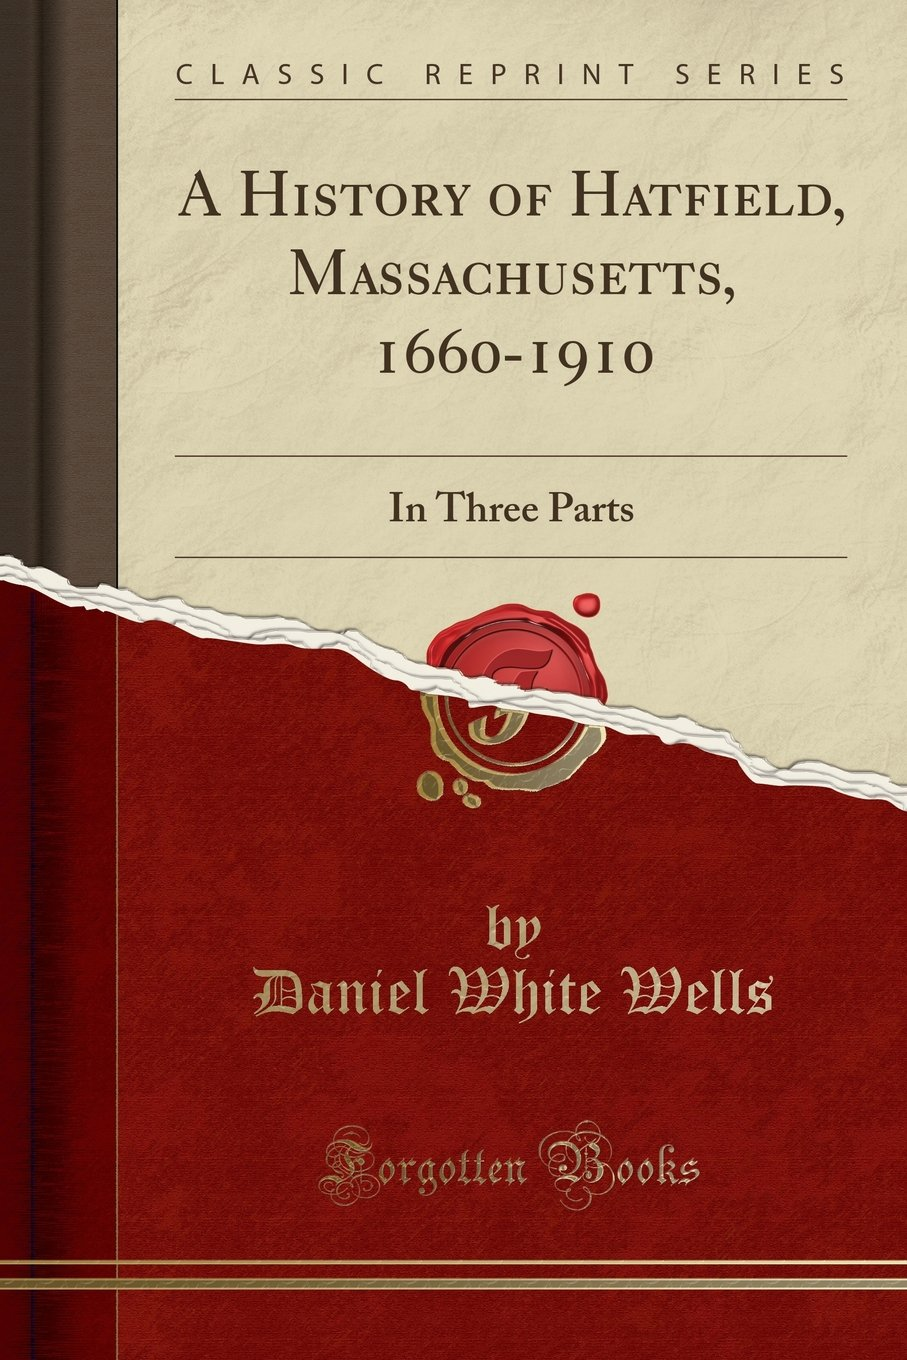 Read Online A History of Hatfield, Massachusetts, 1660-1910: In Three Parts (Classic Reprint) PDF